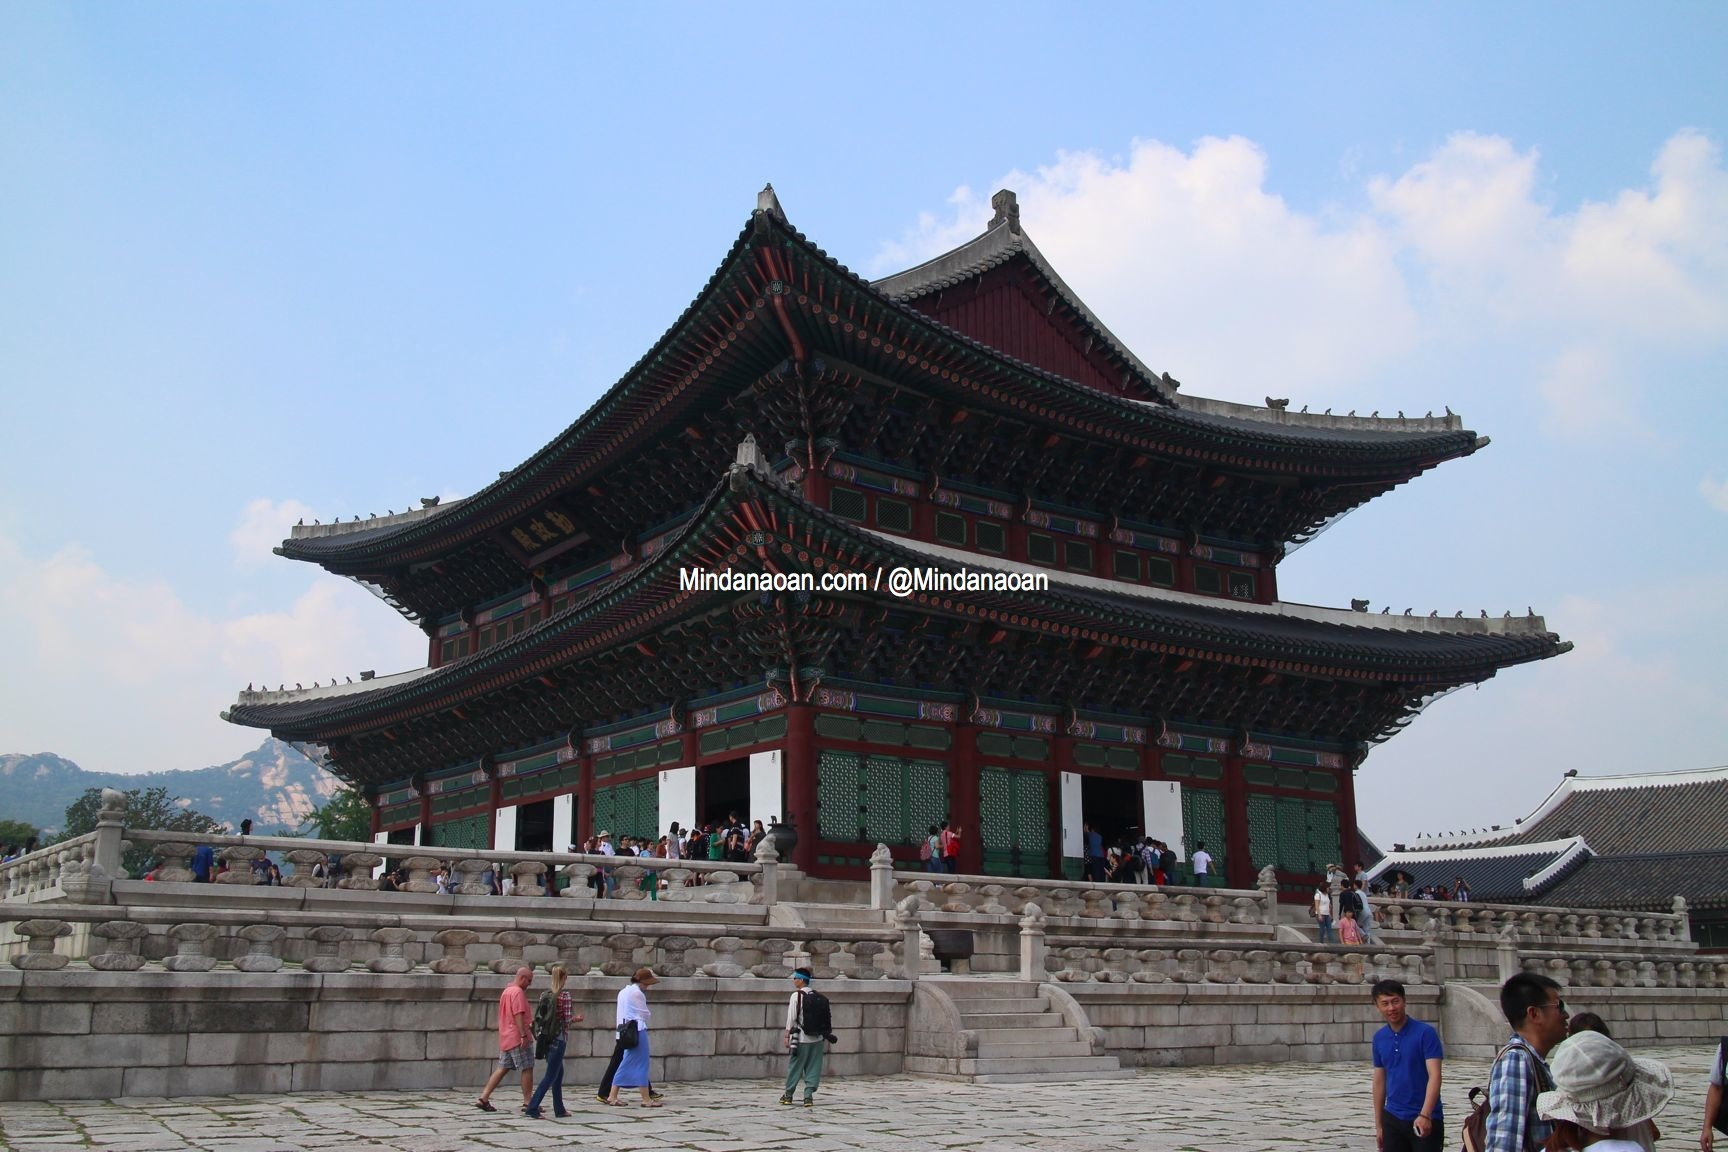 Mindanaoan in Korea travel series: itinerary, tips and more